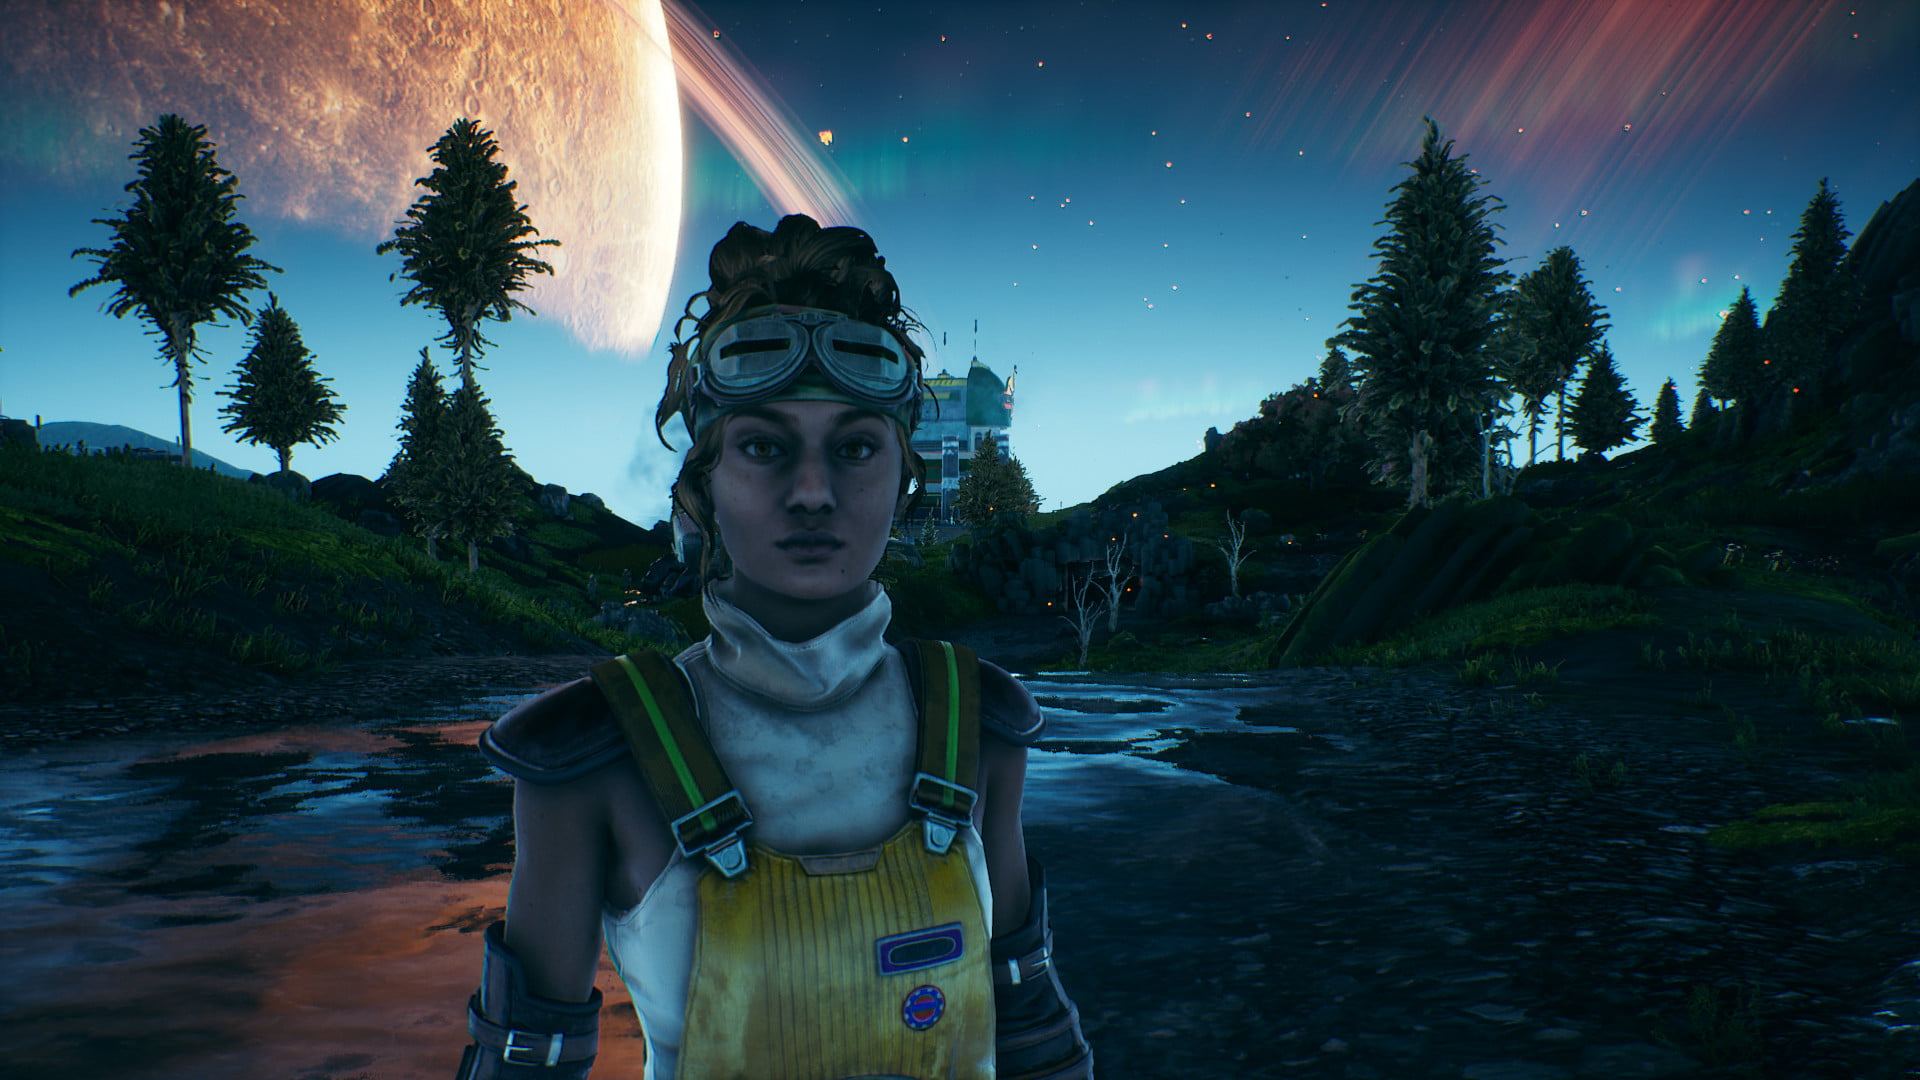 The Outer Worlds Ditches Romance For Friendship And Is Better For It